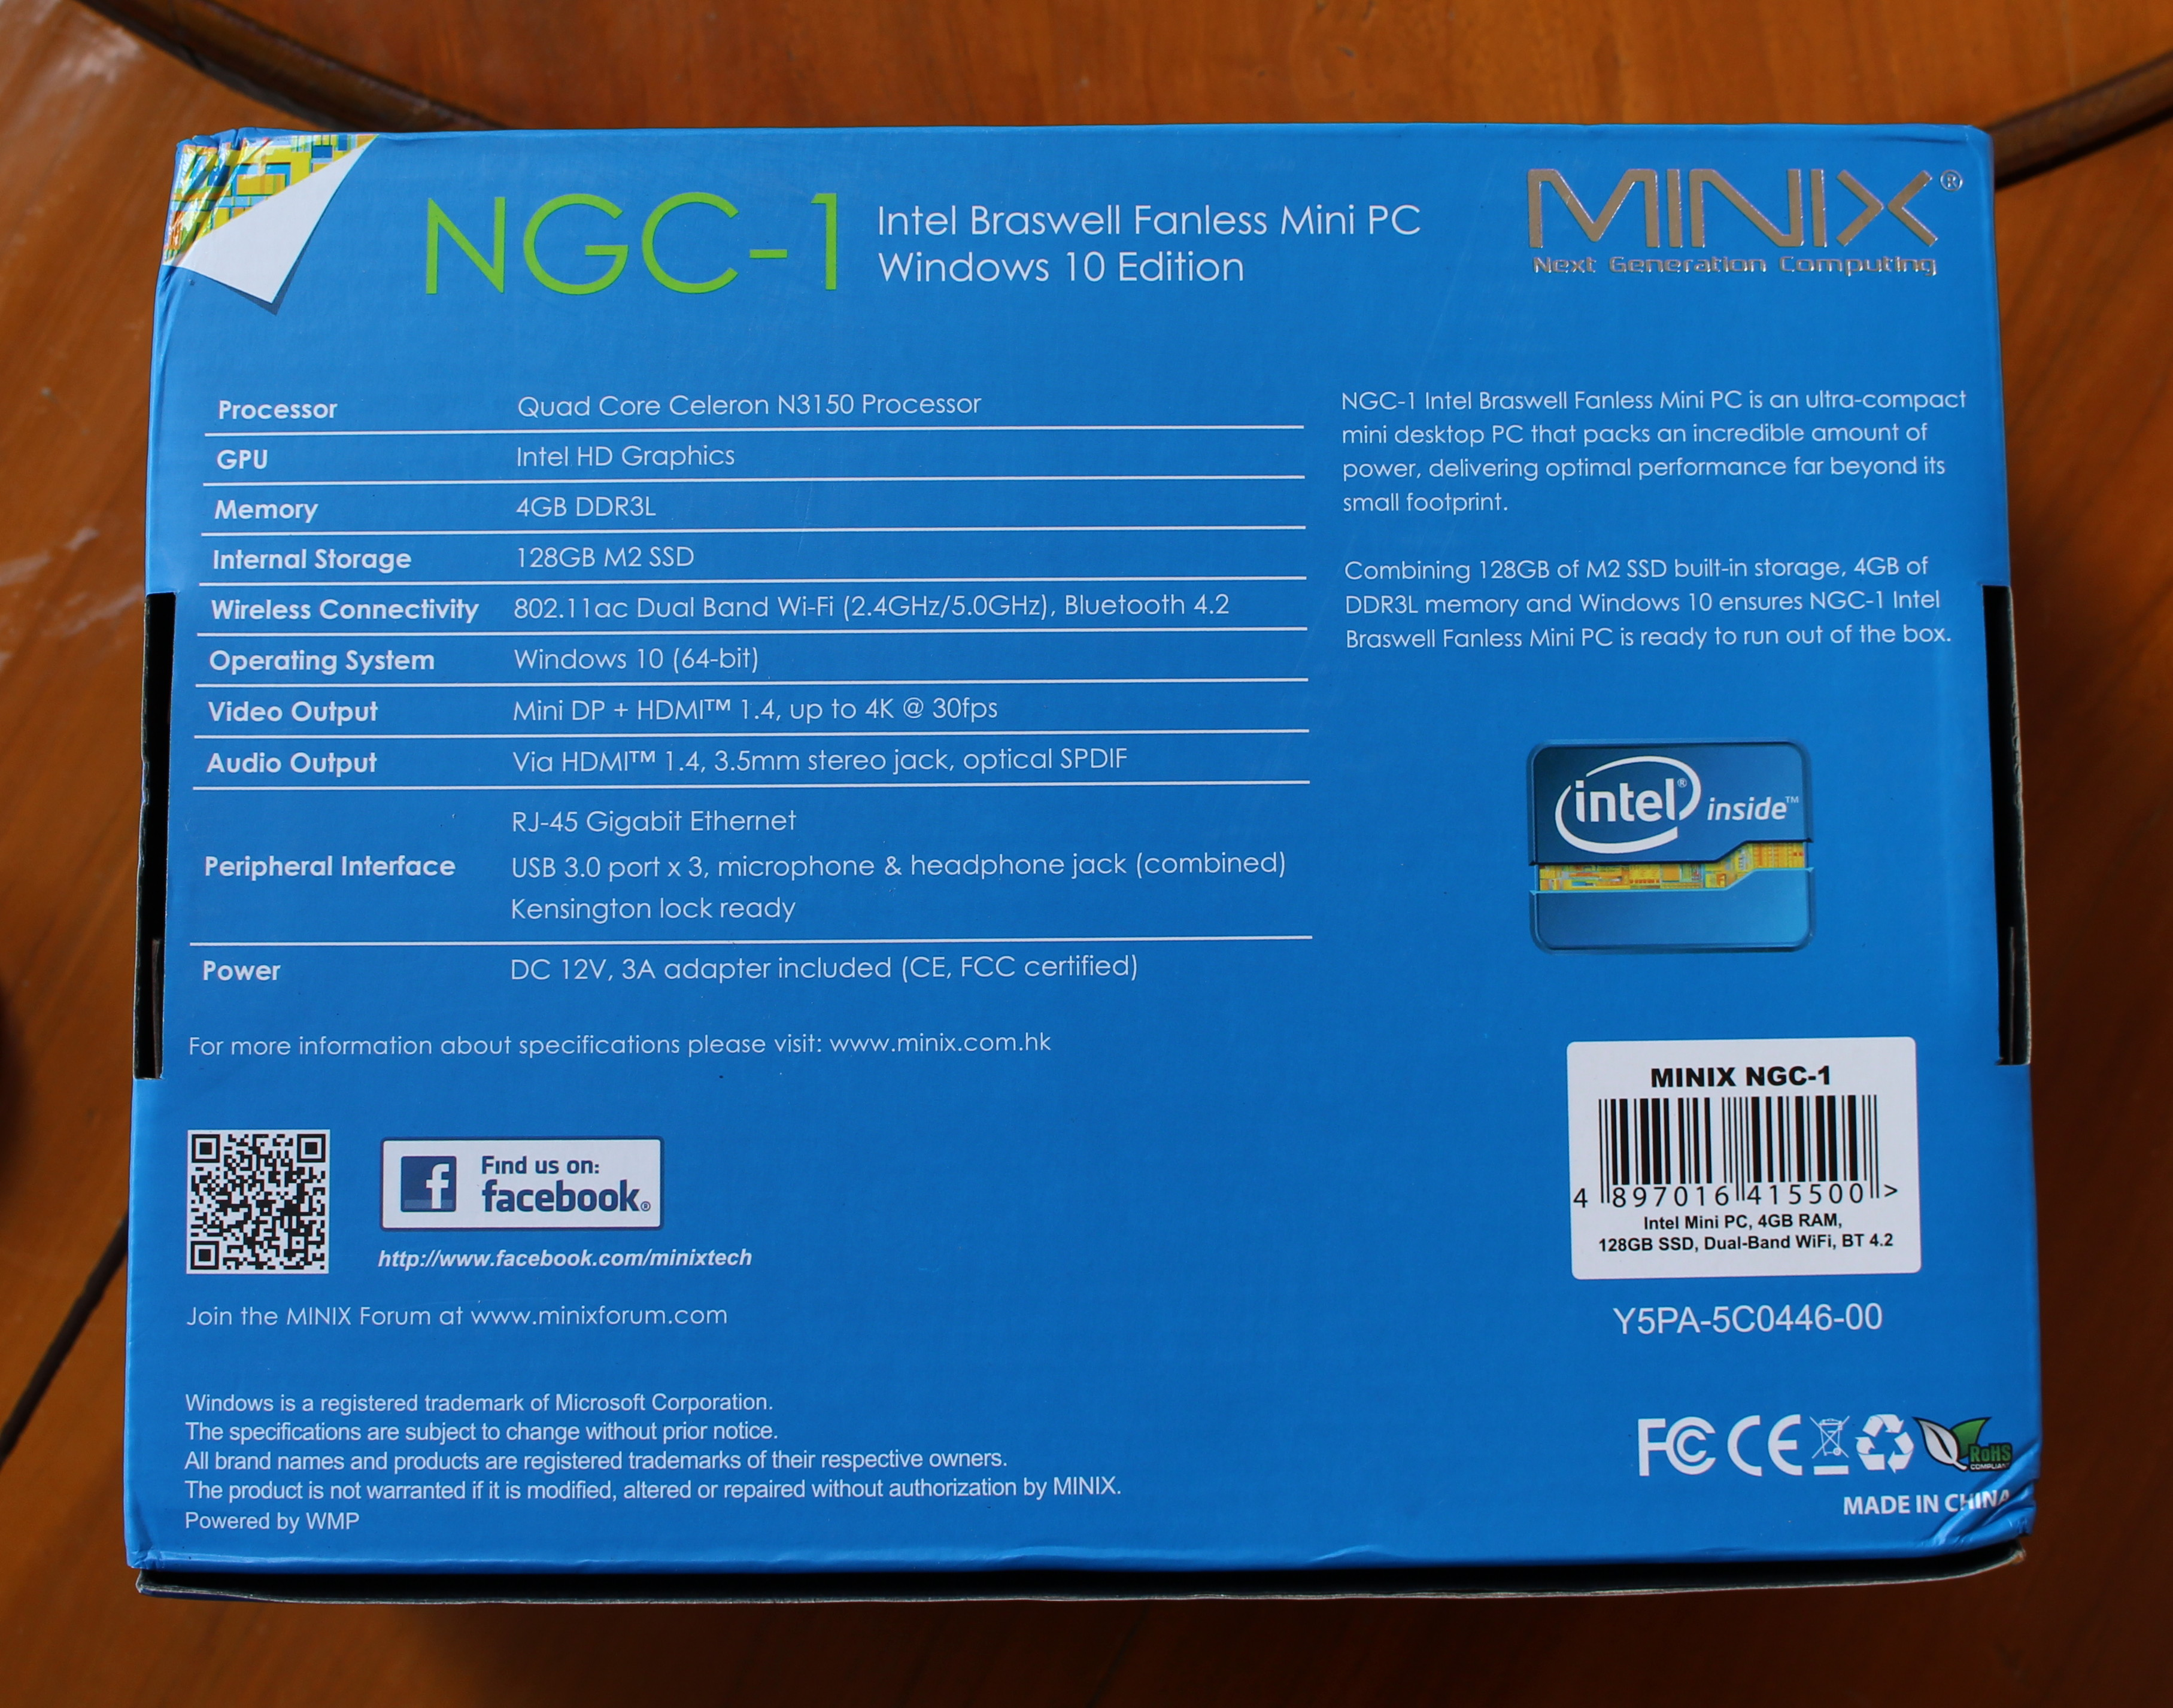 MINIX_NGC-1_Specifications_Large